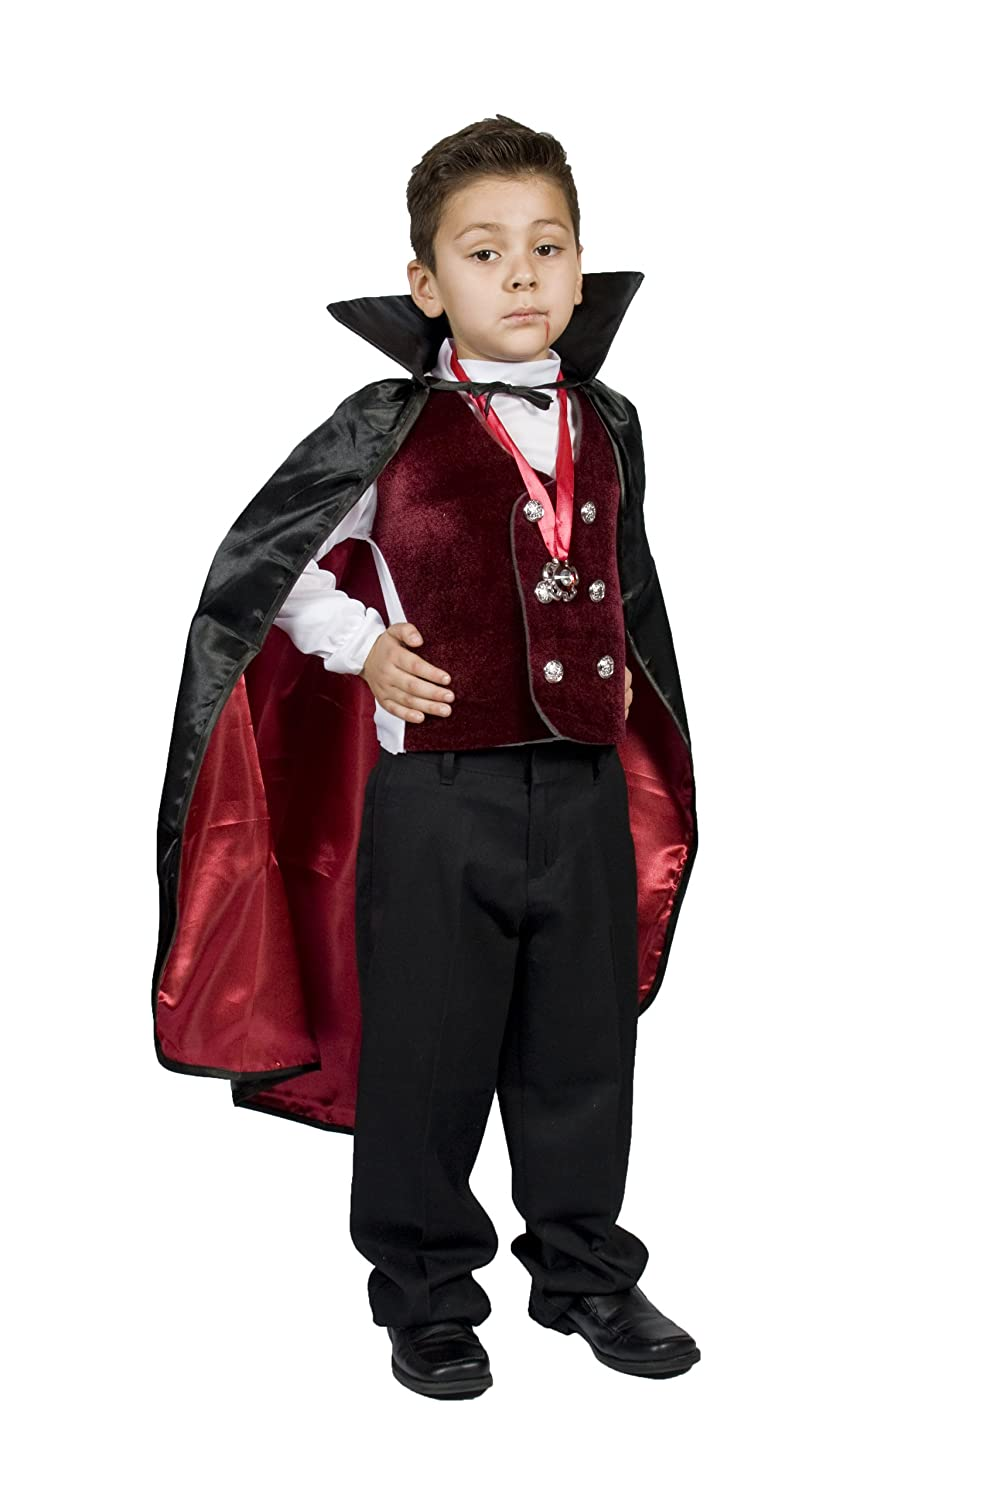 Vampire costumes for boys halloween wikii for Children s halloween costume ideas